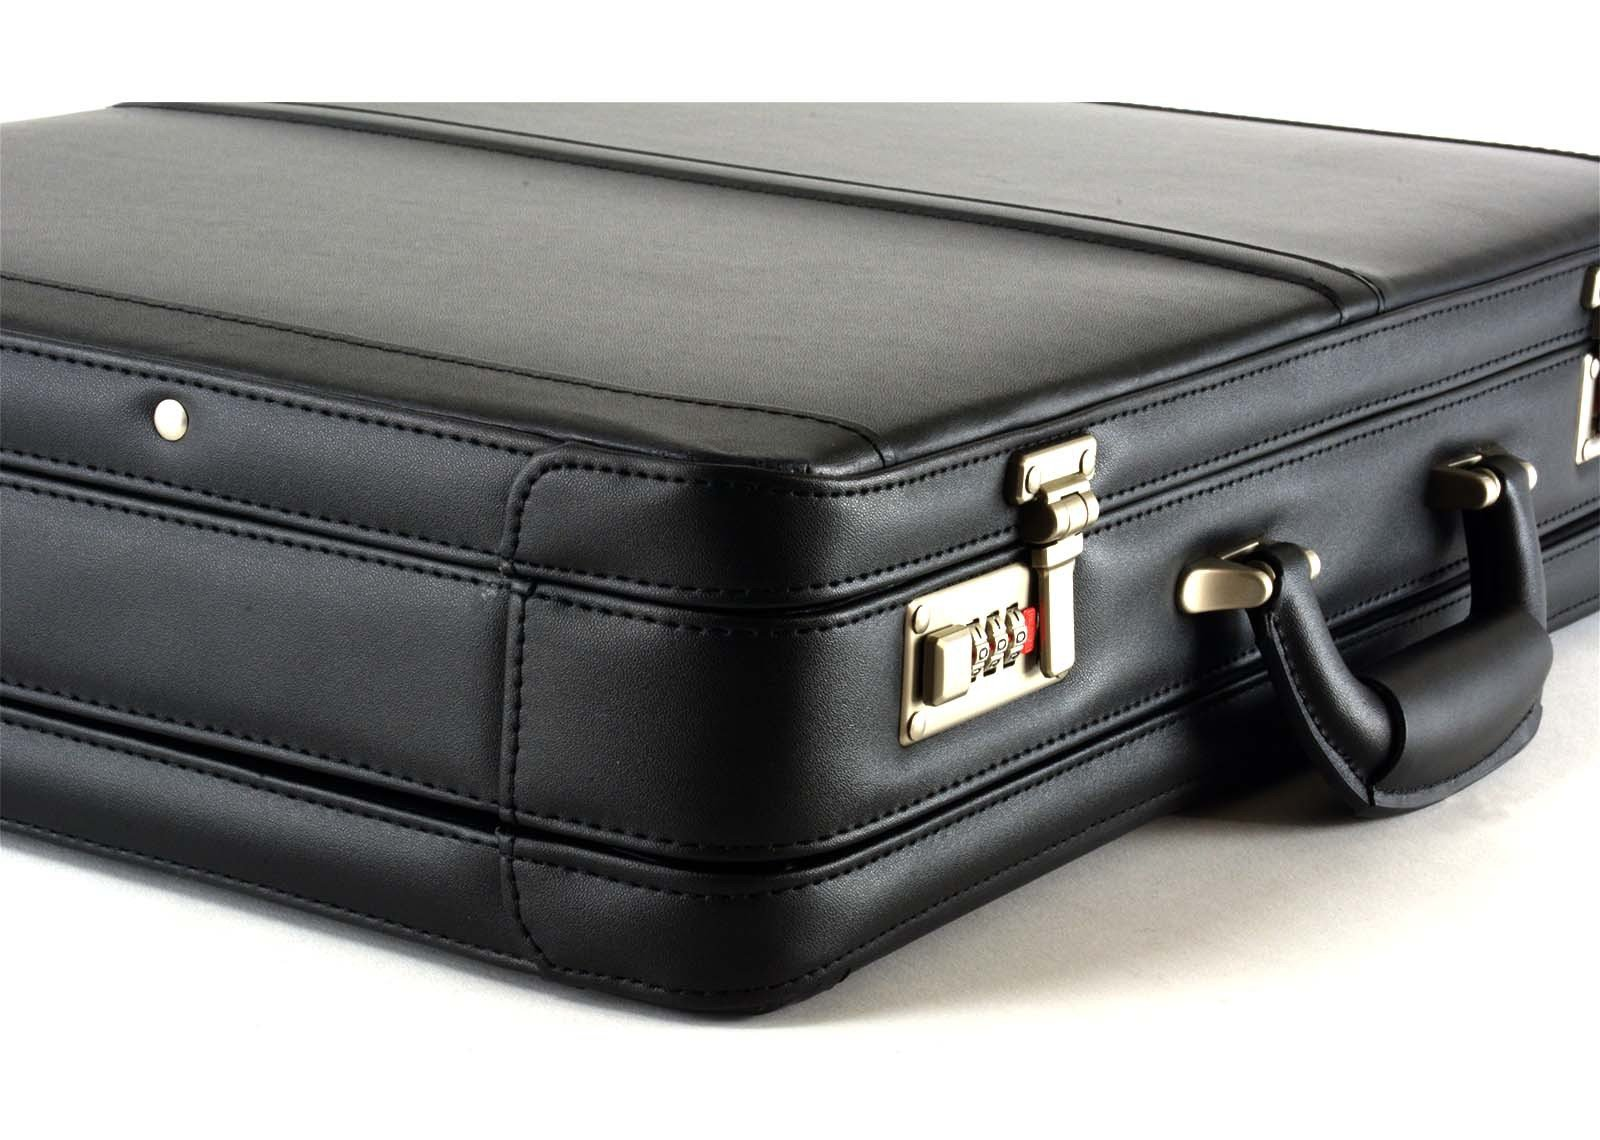 Alpine Swiss Expandable Leather Attache Briefcase Dual Combination Locks 1 Year Warranty by alpine swiss (Image #5)